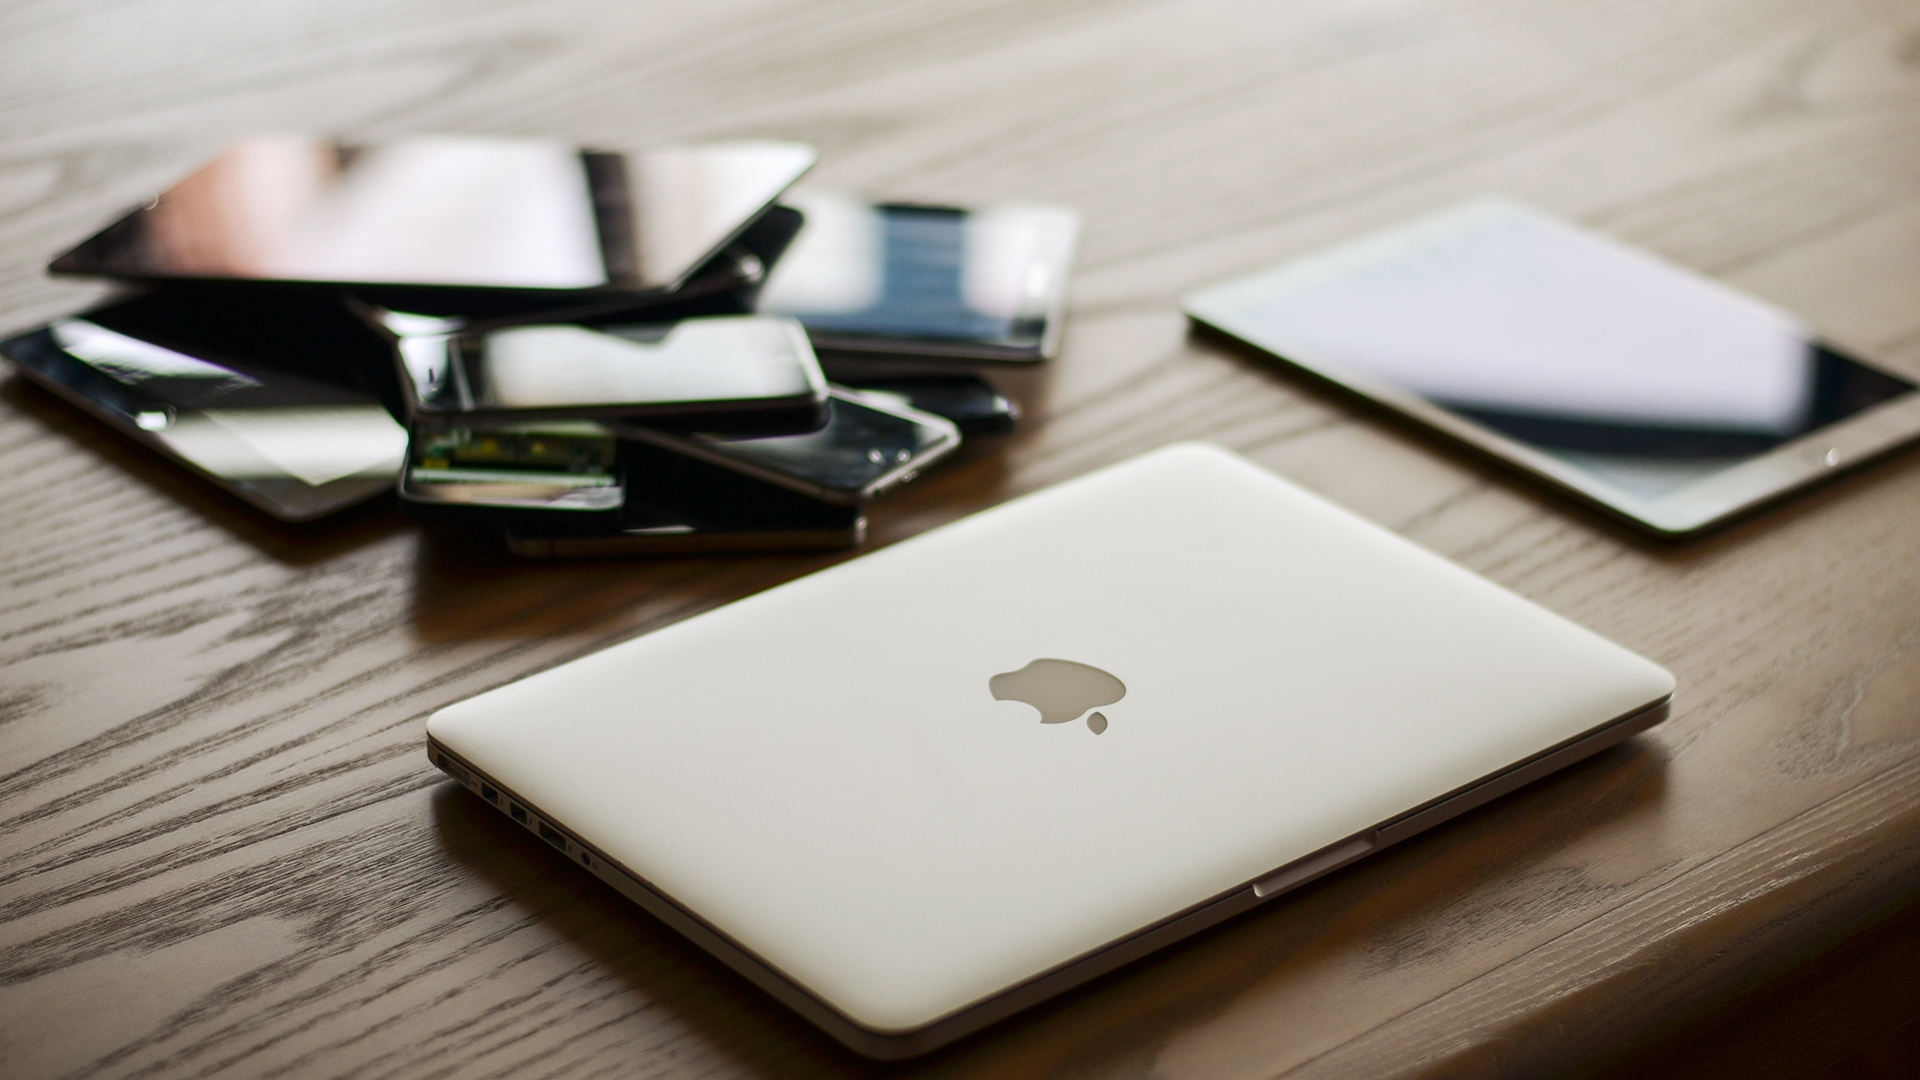 Know the dangers of BYOD